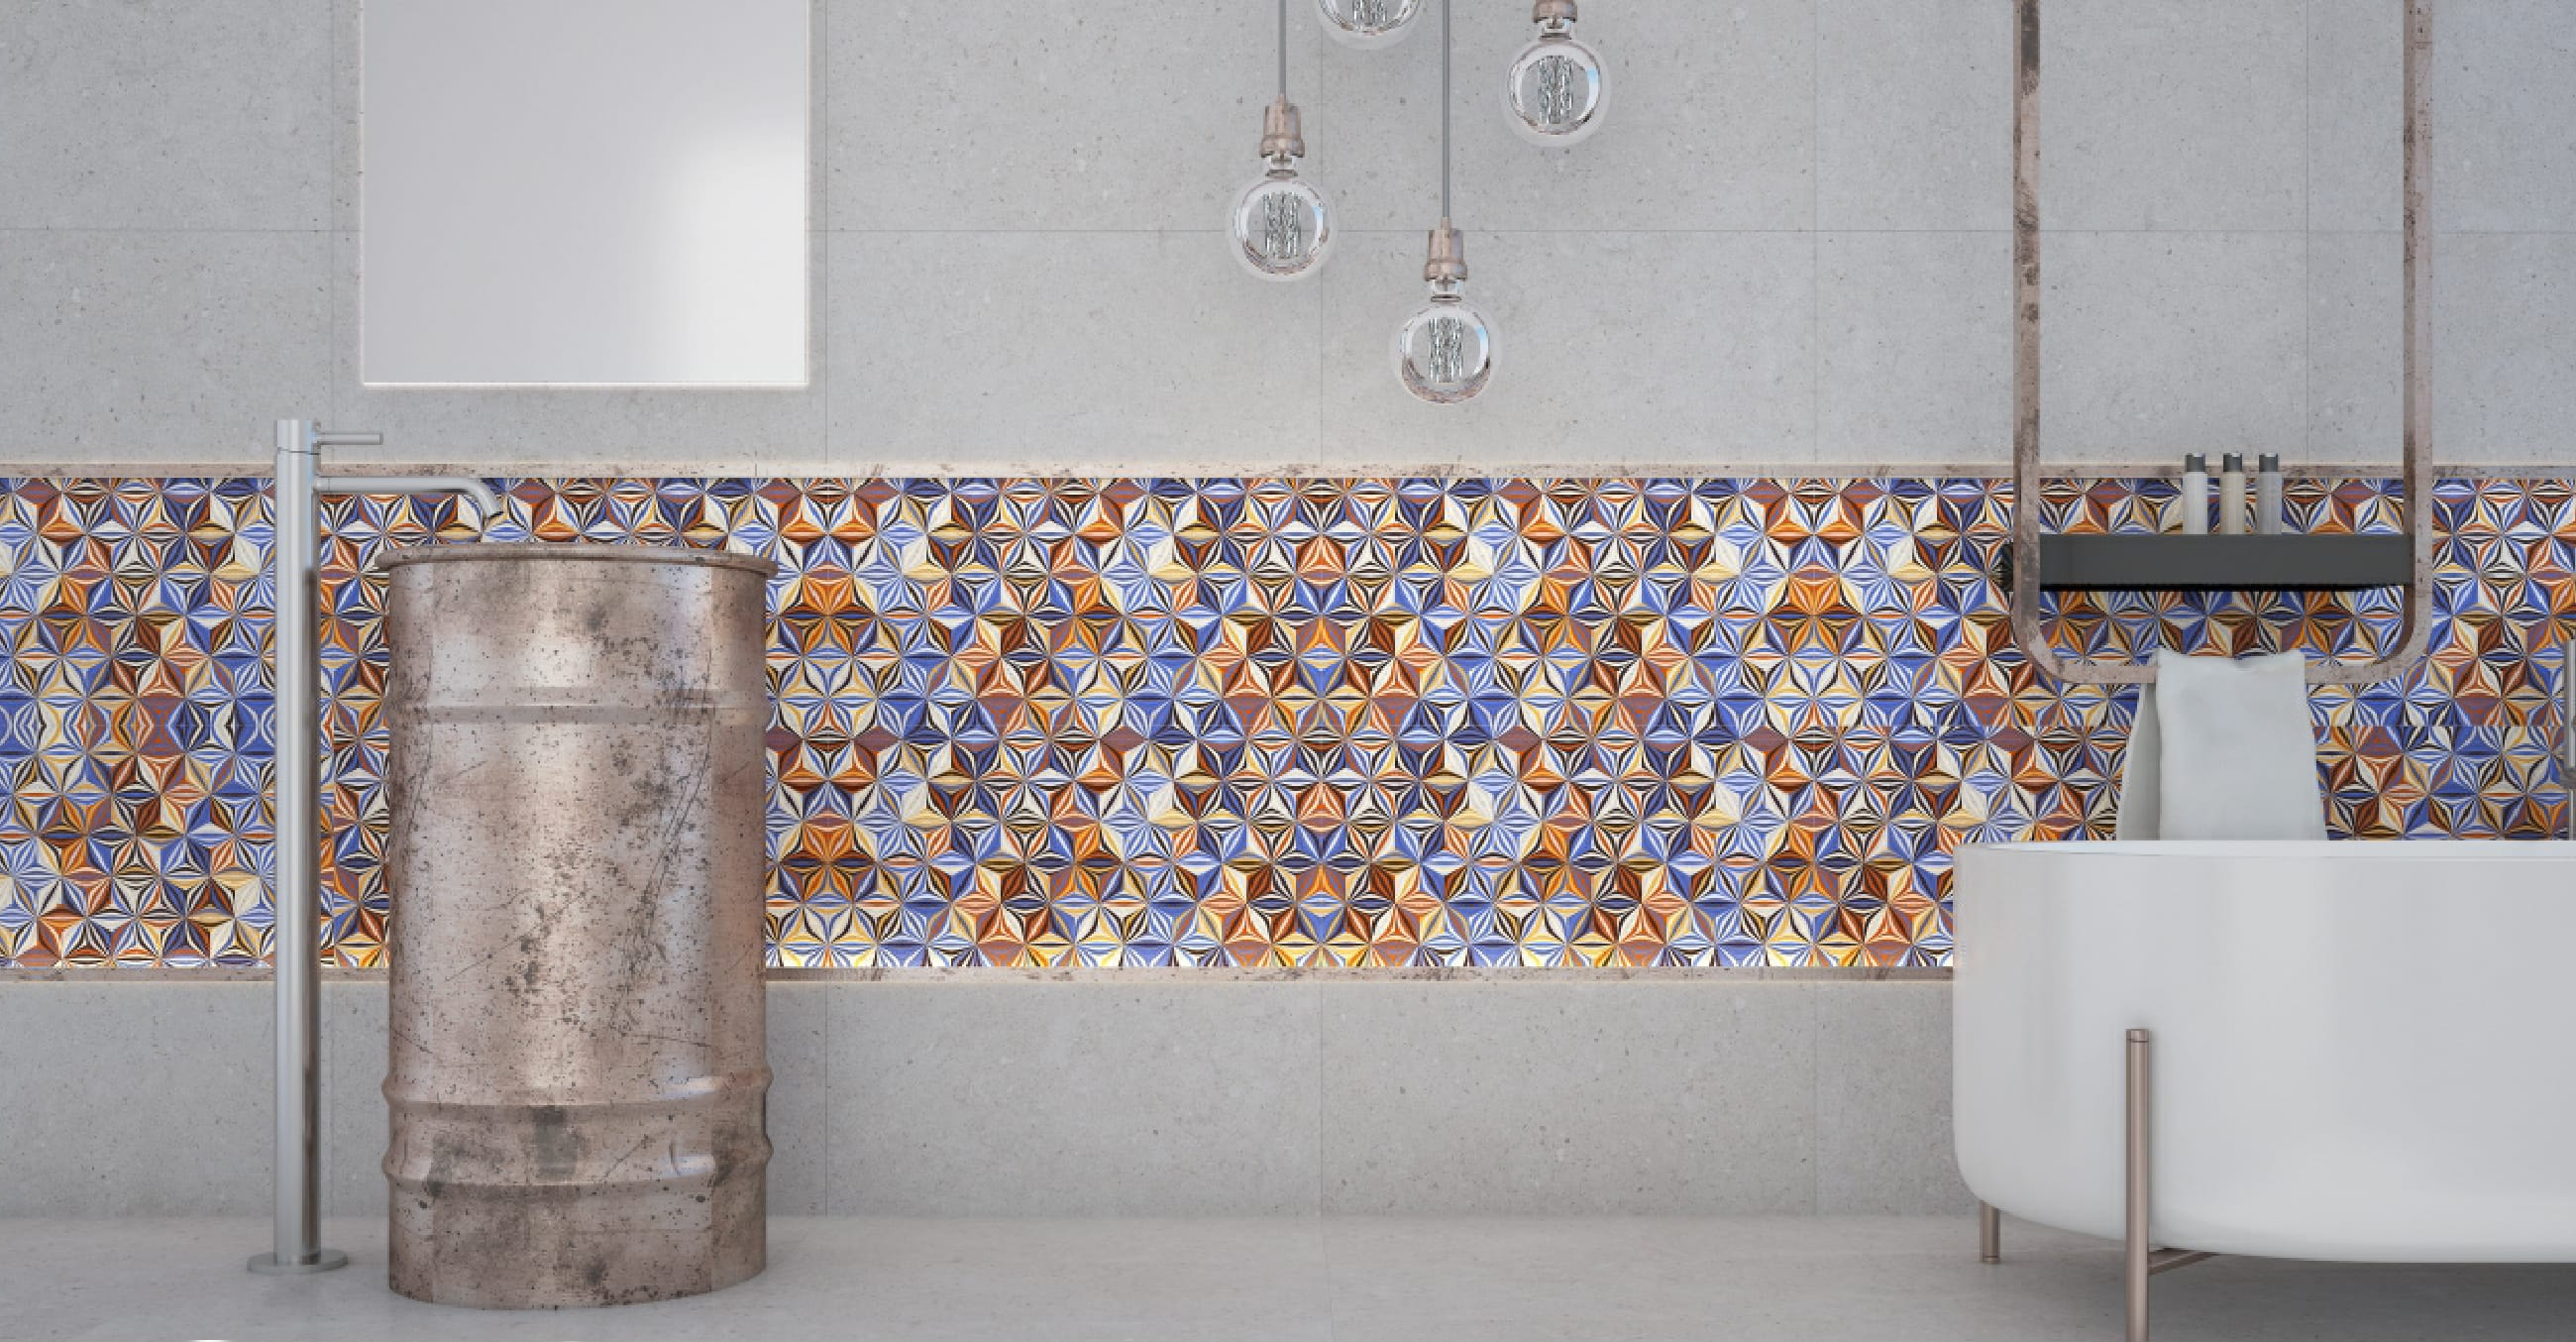 Surefire design ideas to enrich your tiles for your Small Bathroom.